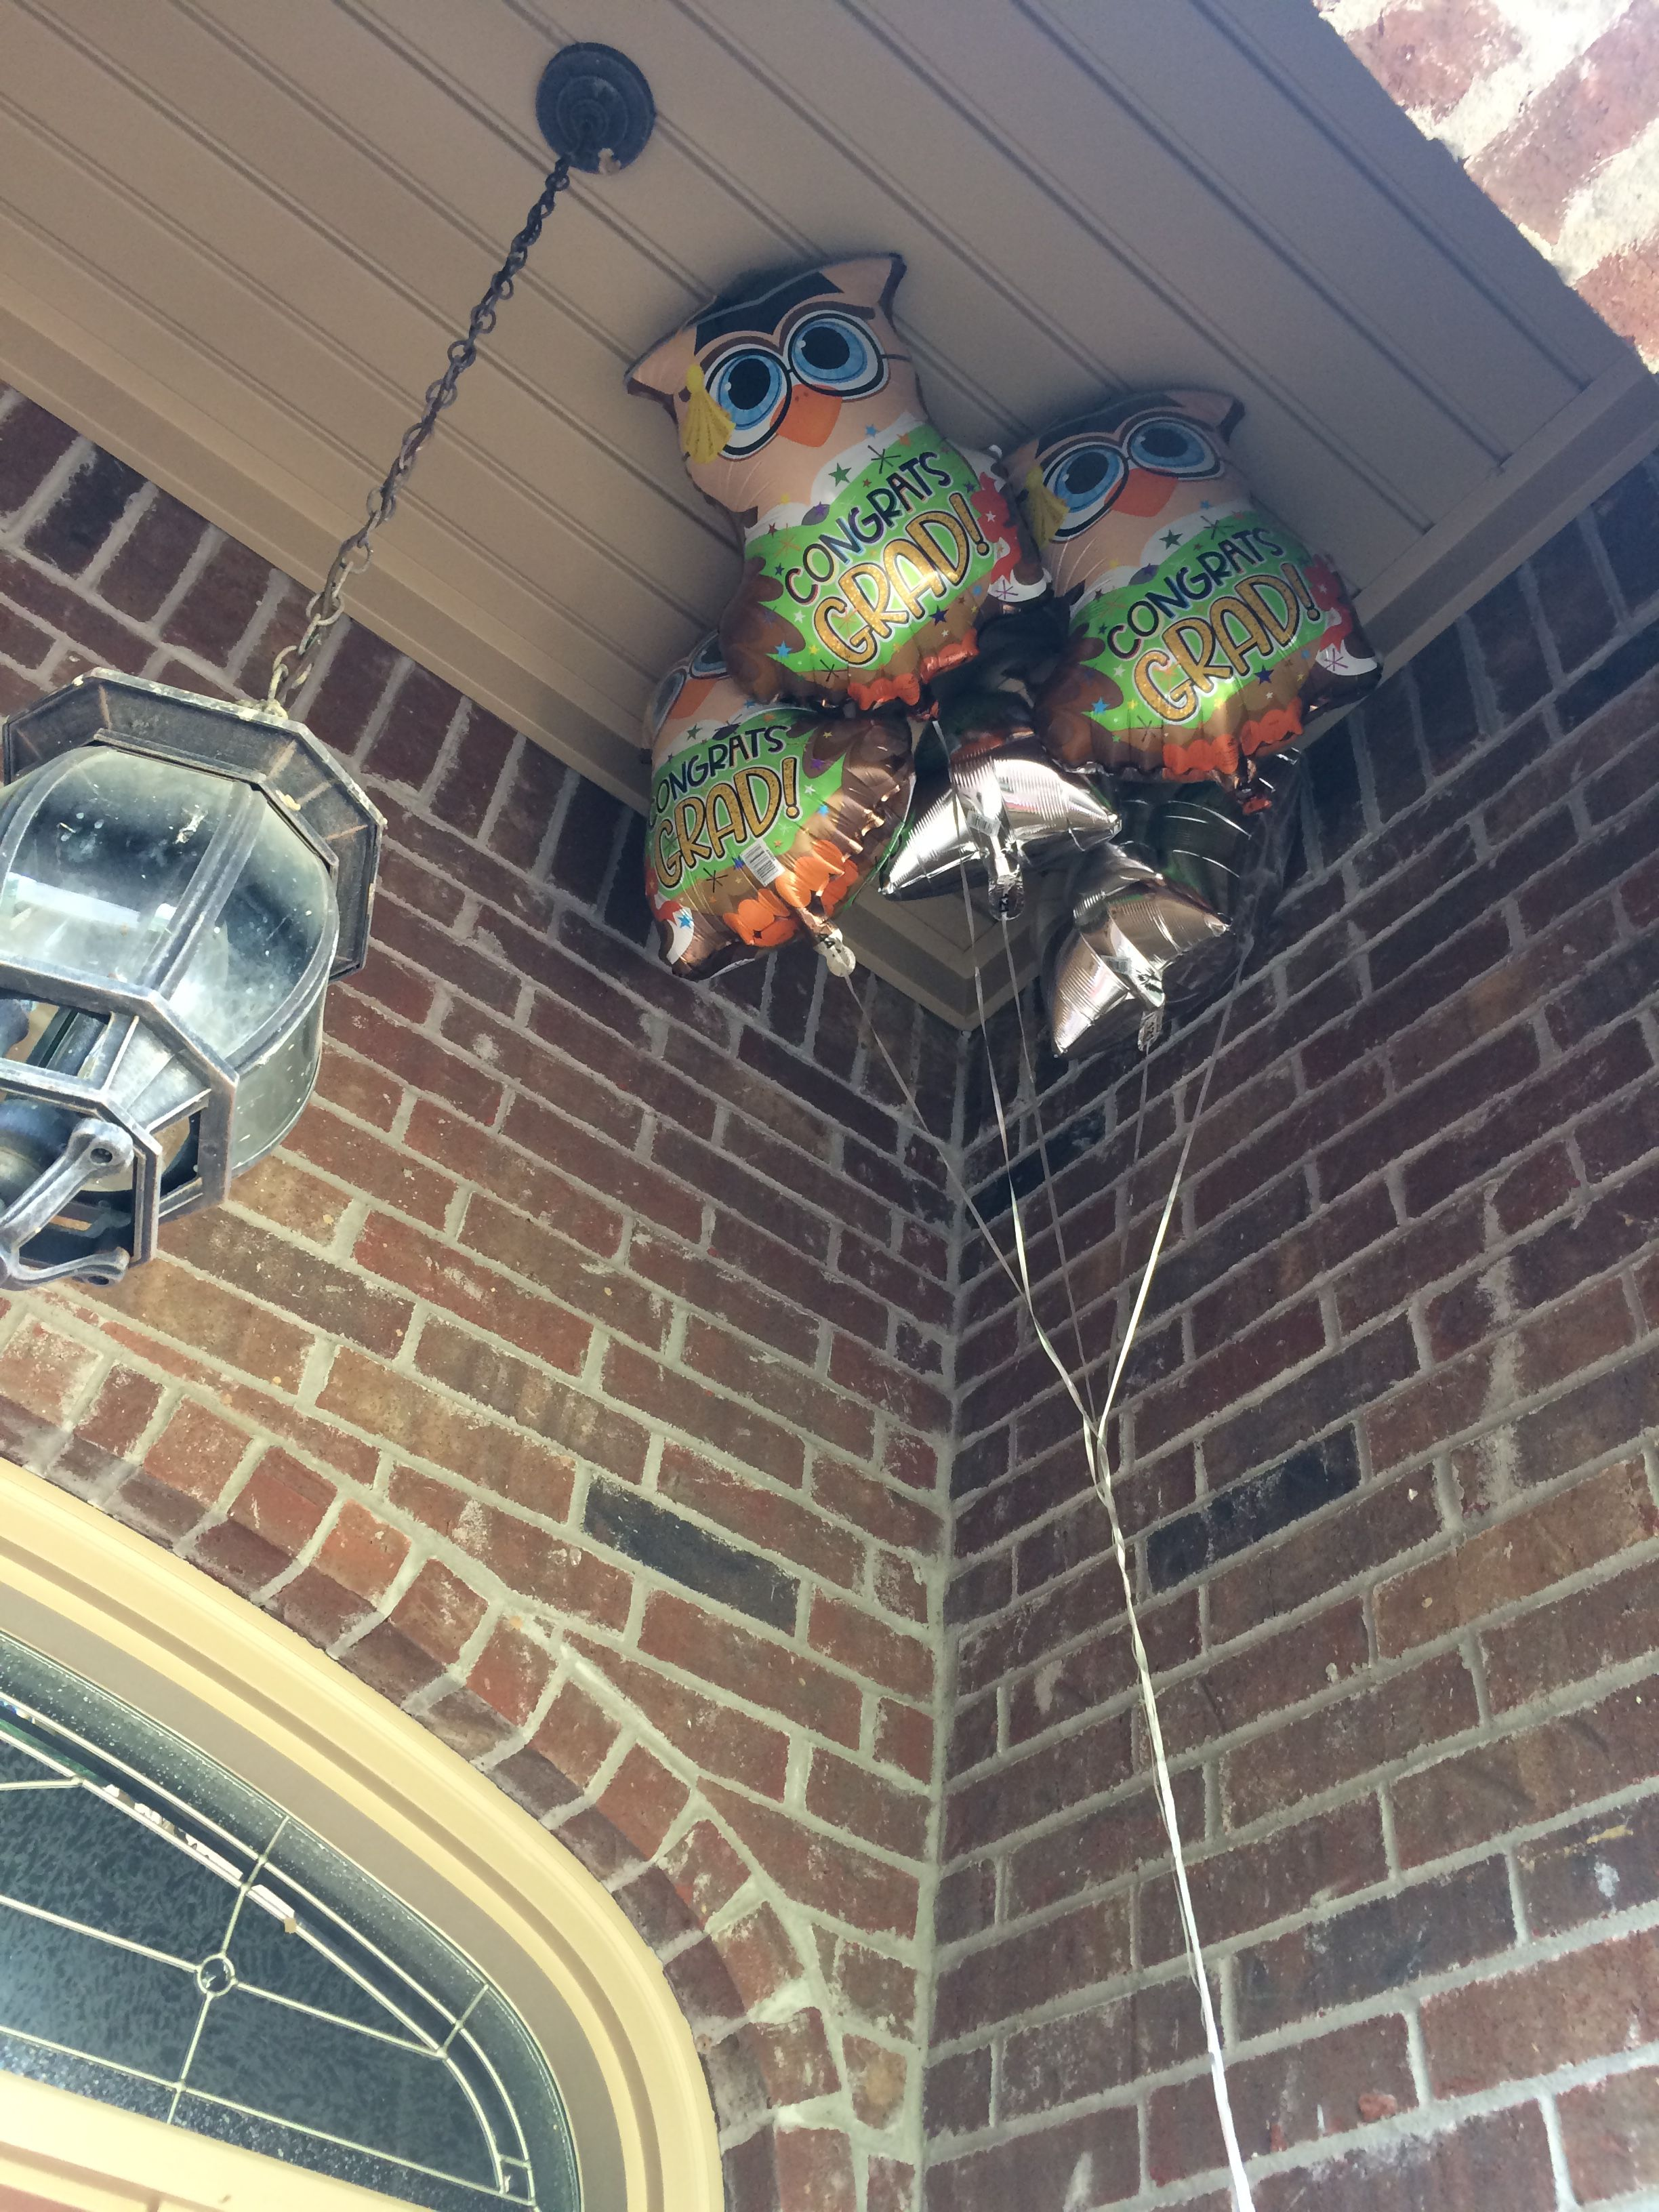 How to get rid of swallows and other birds nesting under